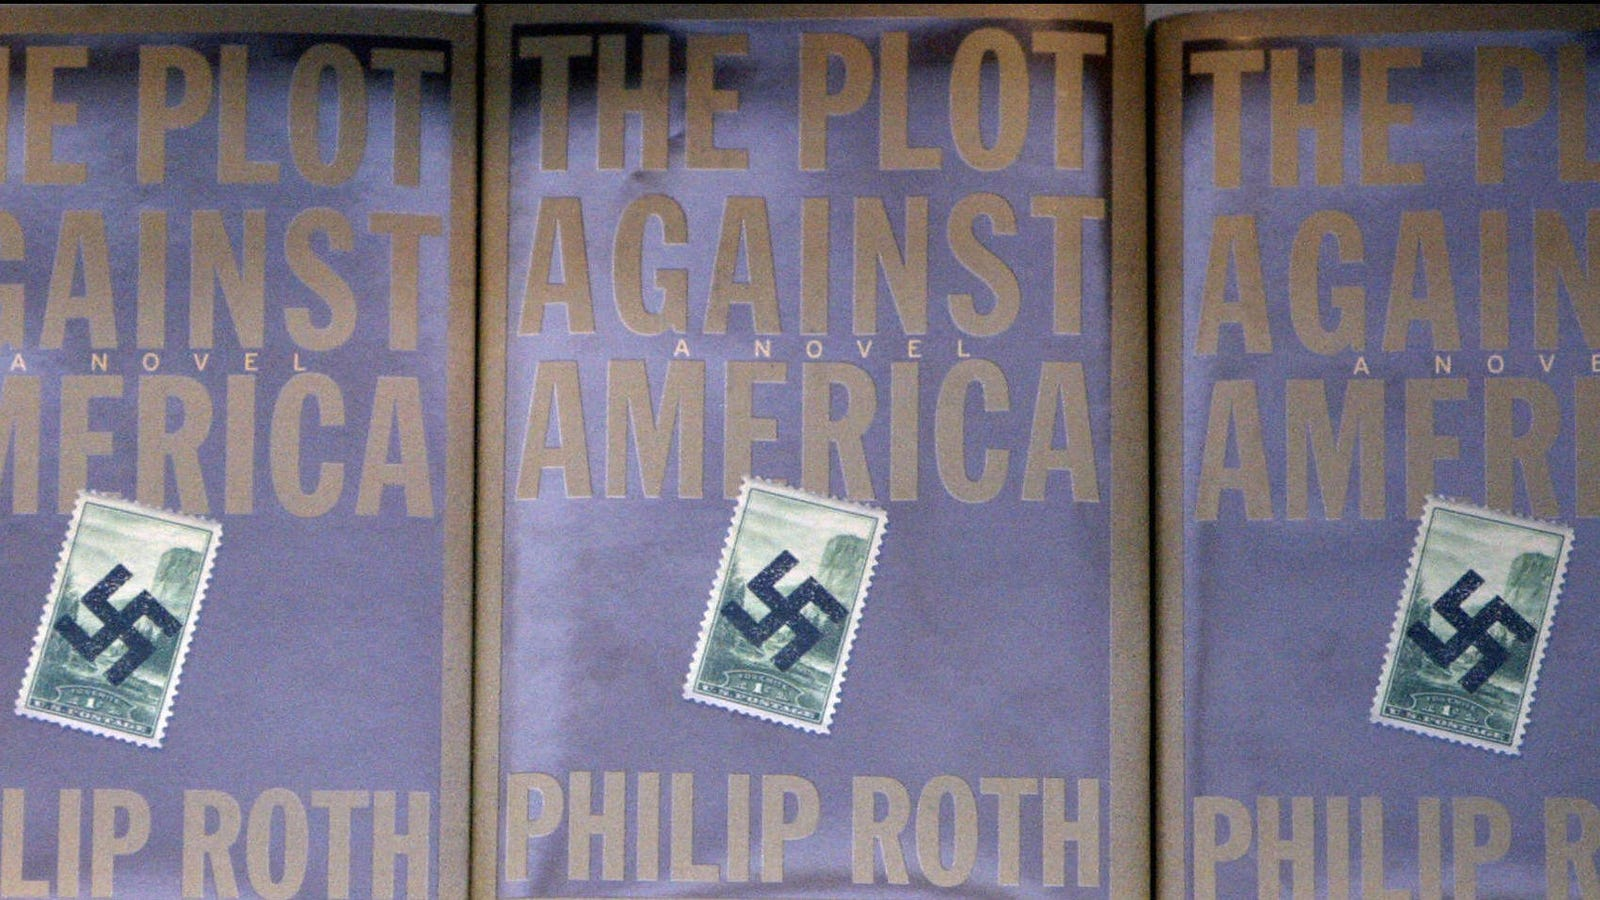 David Simon announces fictional miniseries about the rise of fascism and antisemitism in America